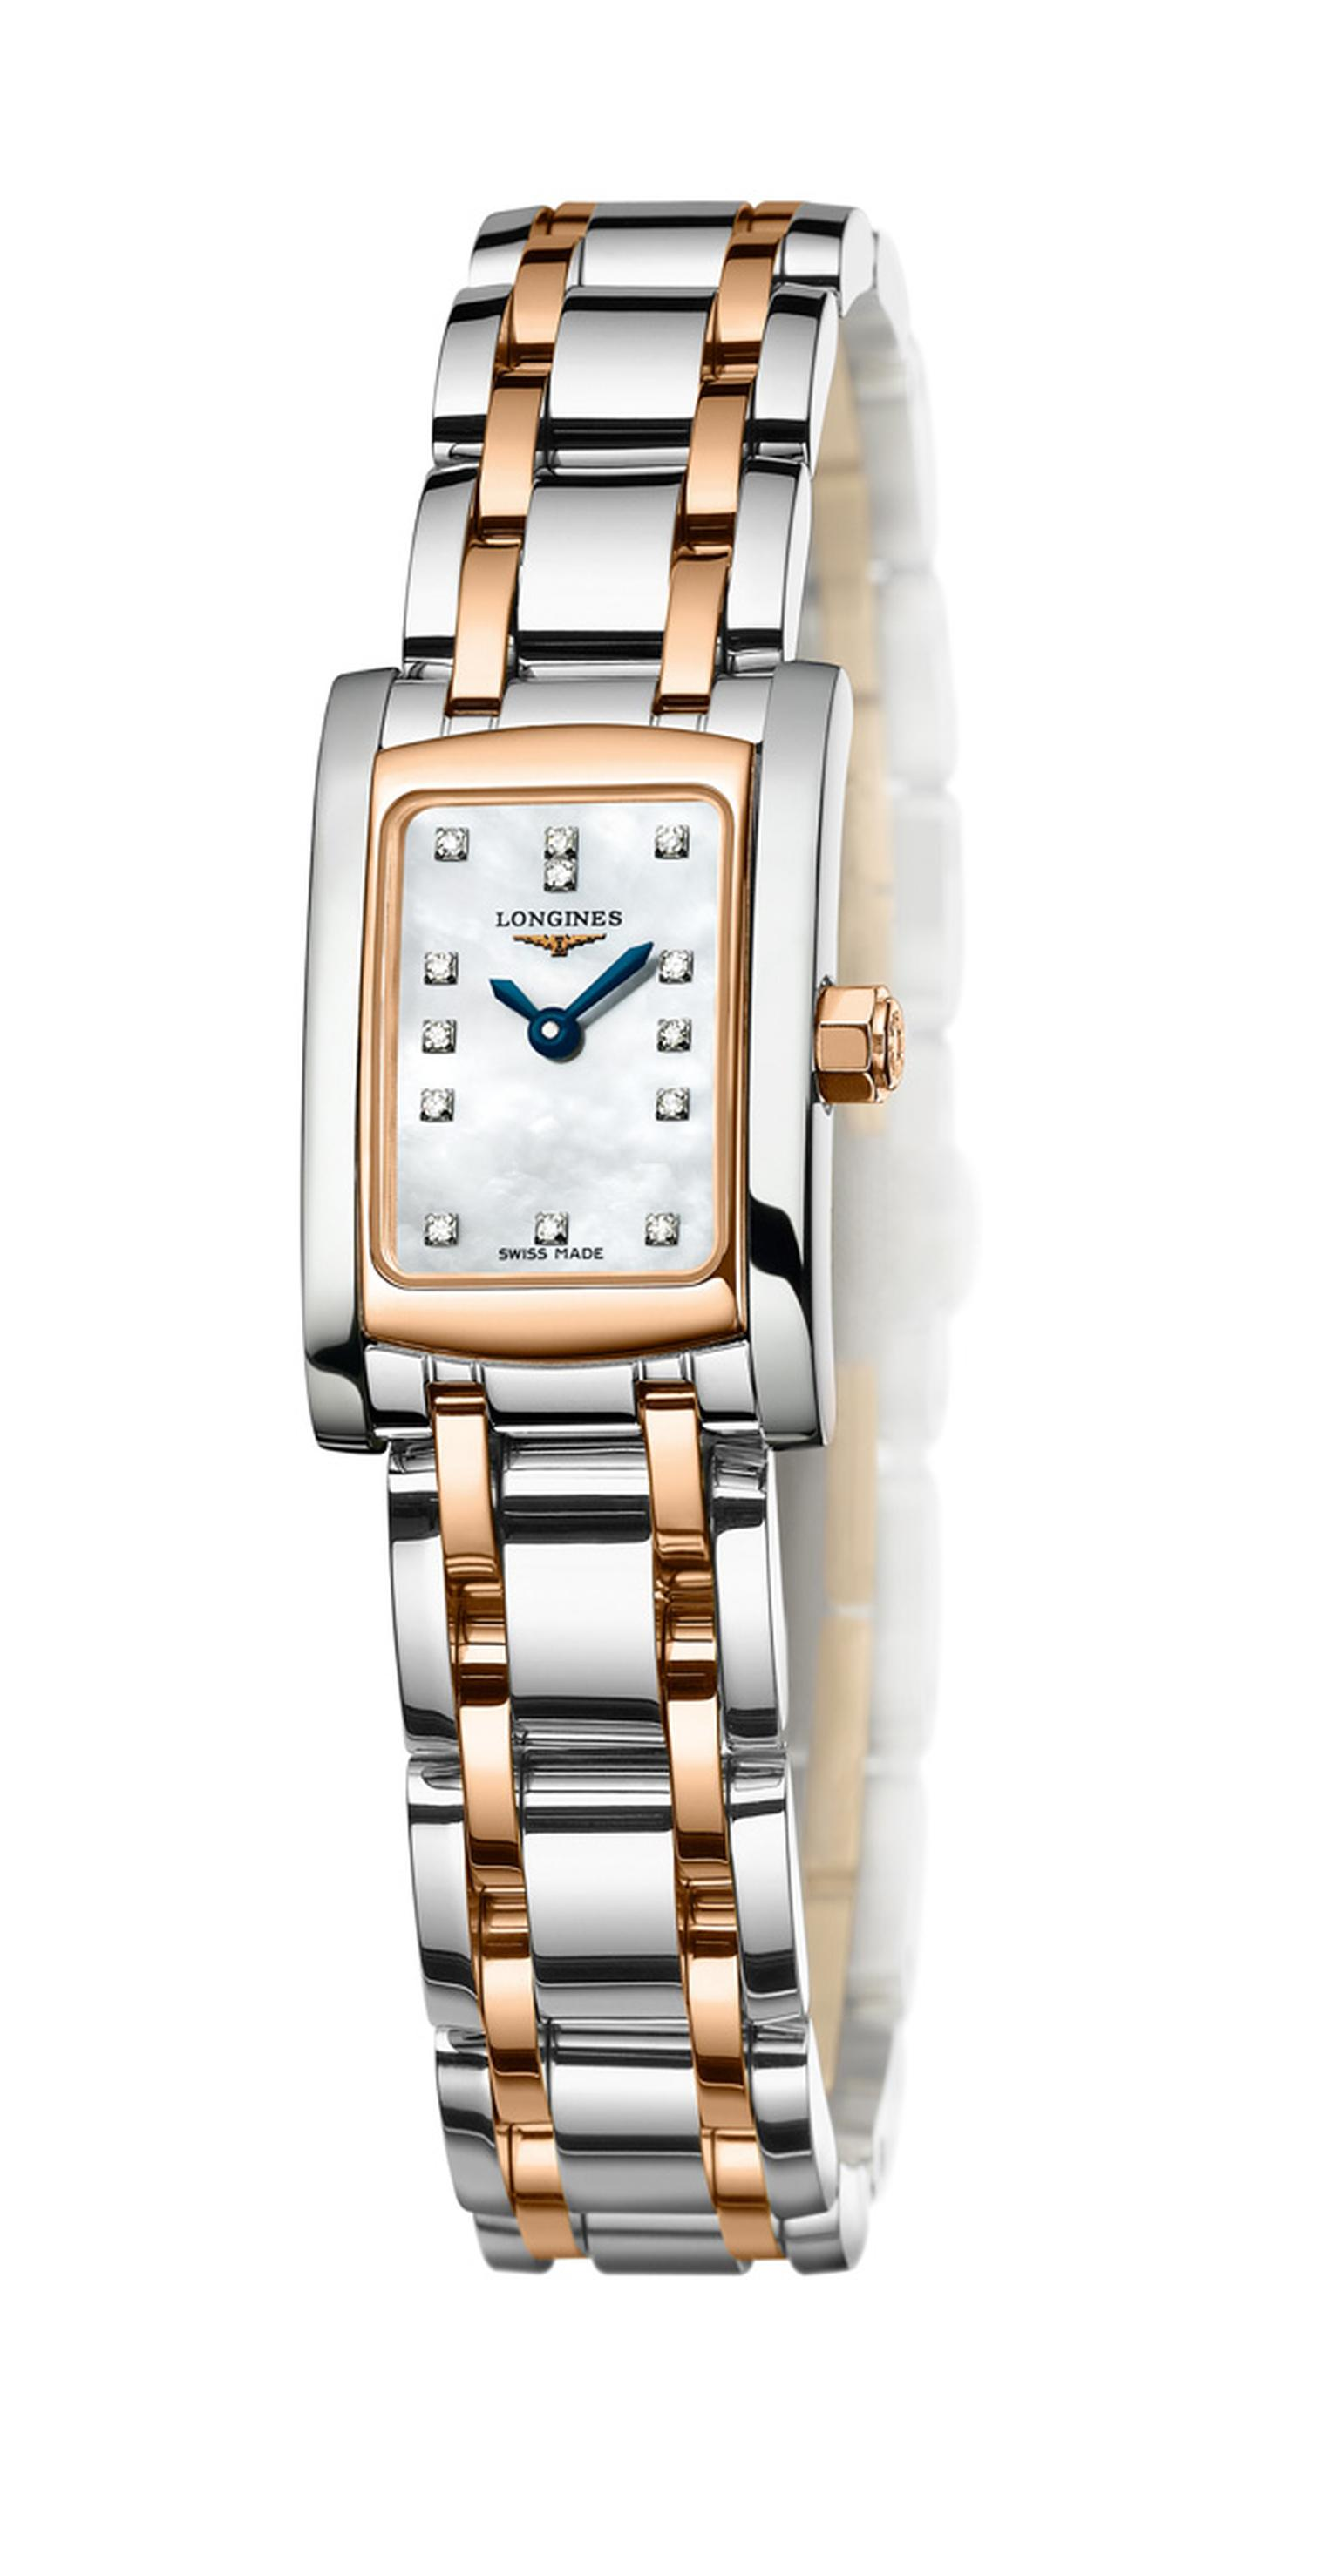 Longines Dolce Vita in steel and rose gold with 13 diamonds on mother of pearl dial